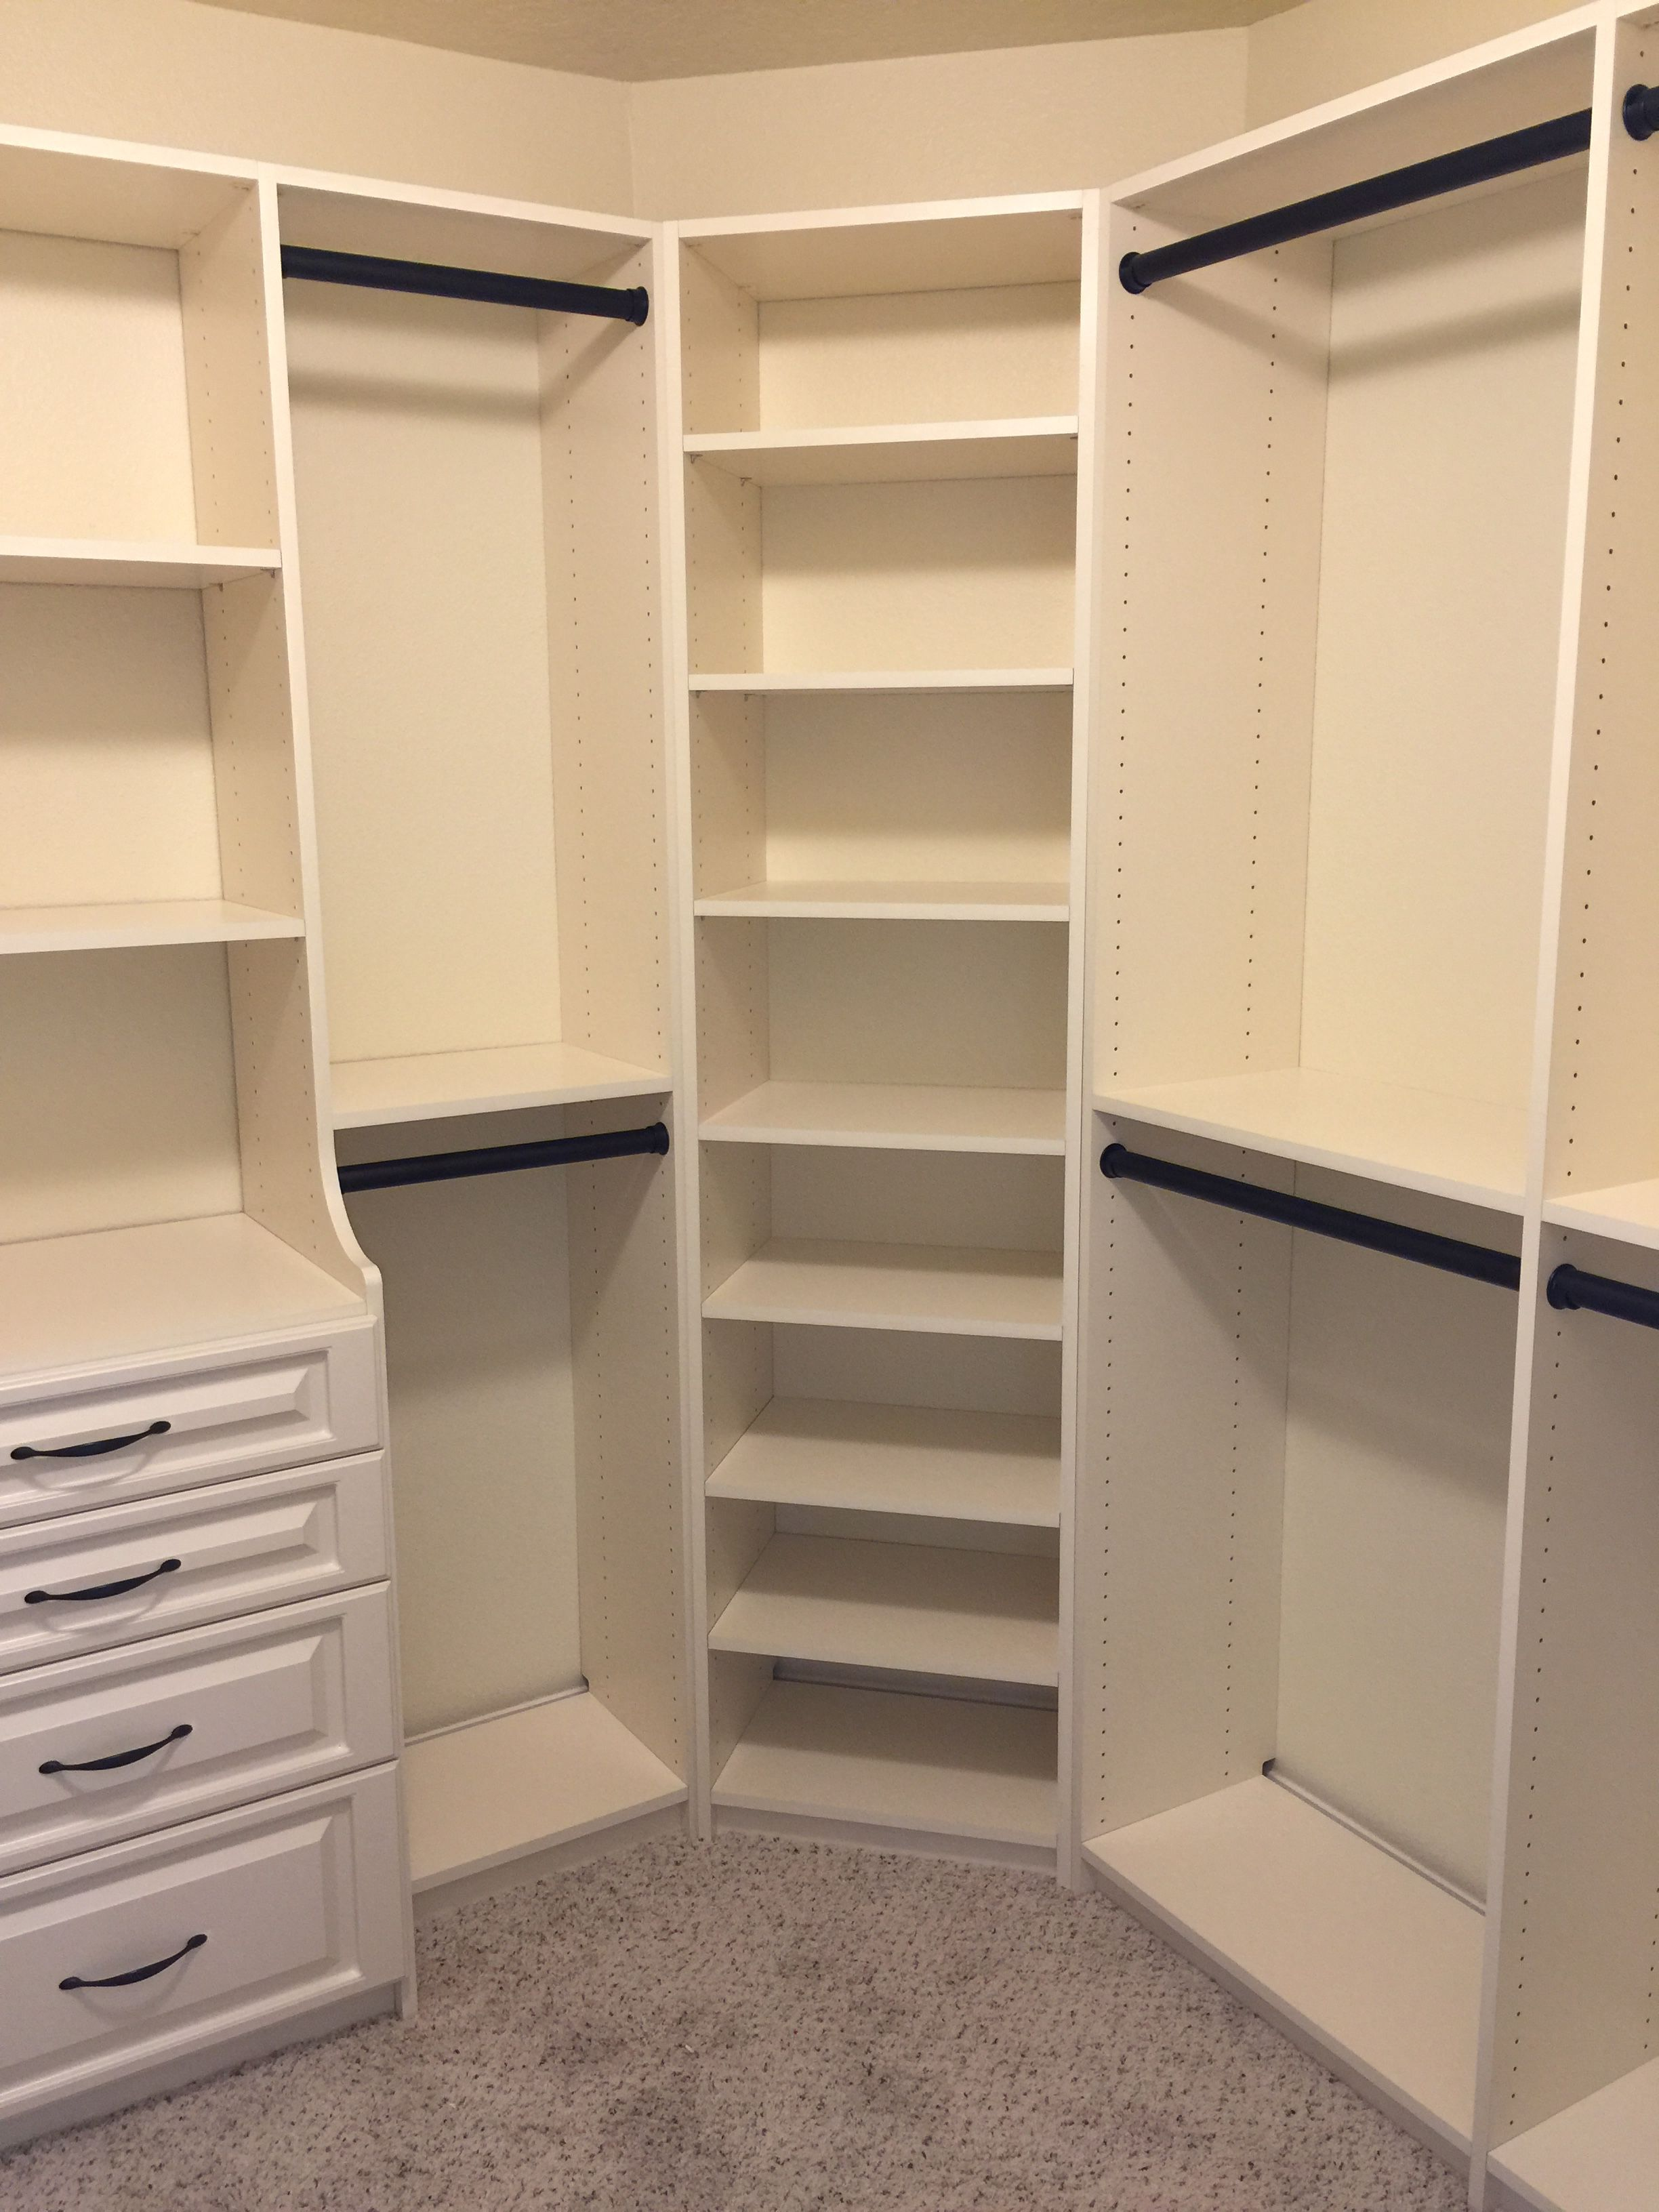 Large Master Closet Ideas Large walk-in closet with plenty of storage space for clothes and shoes